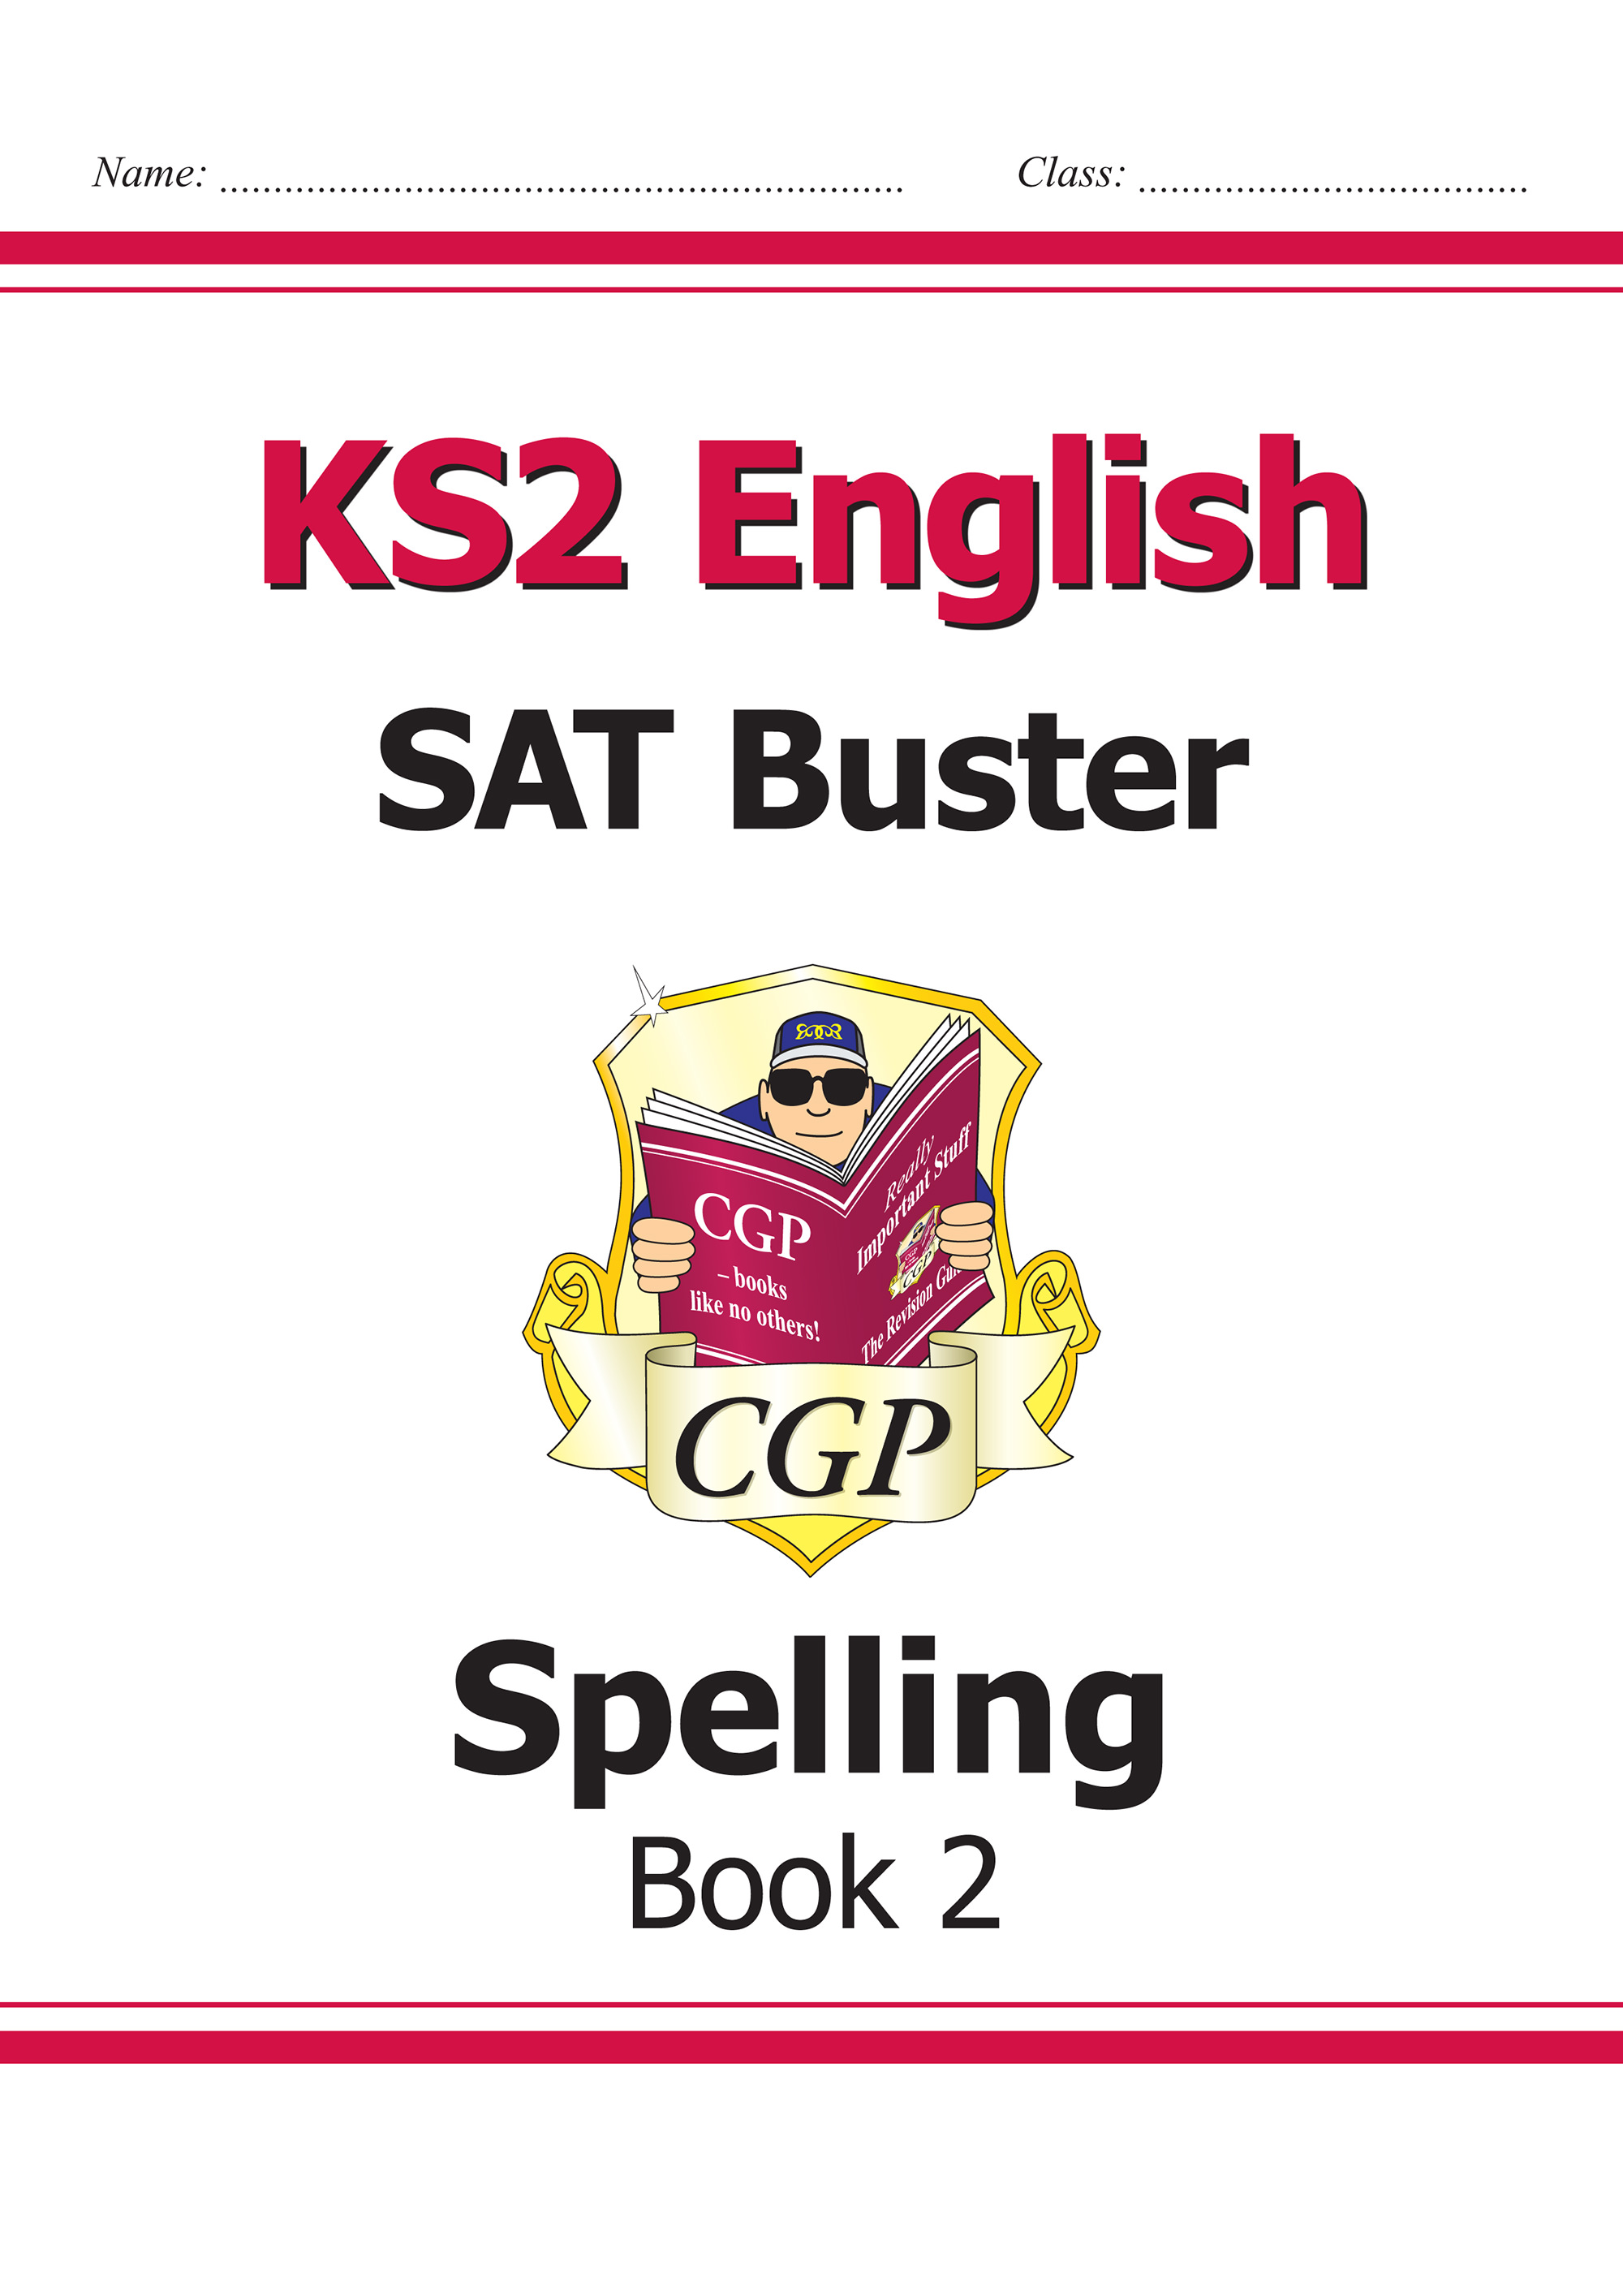 E6S222 - KS2 English SAT Buster - Spelling Book 2 (for the 2020 tests)